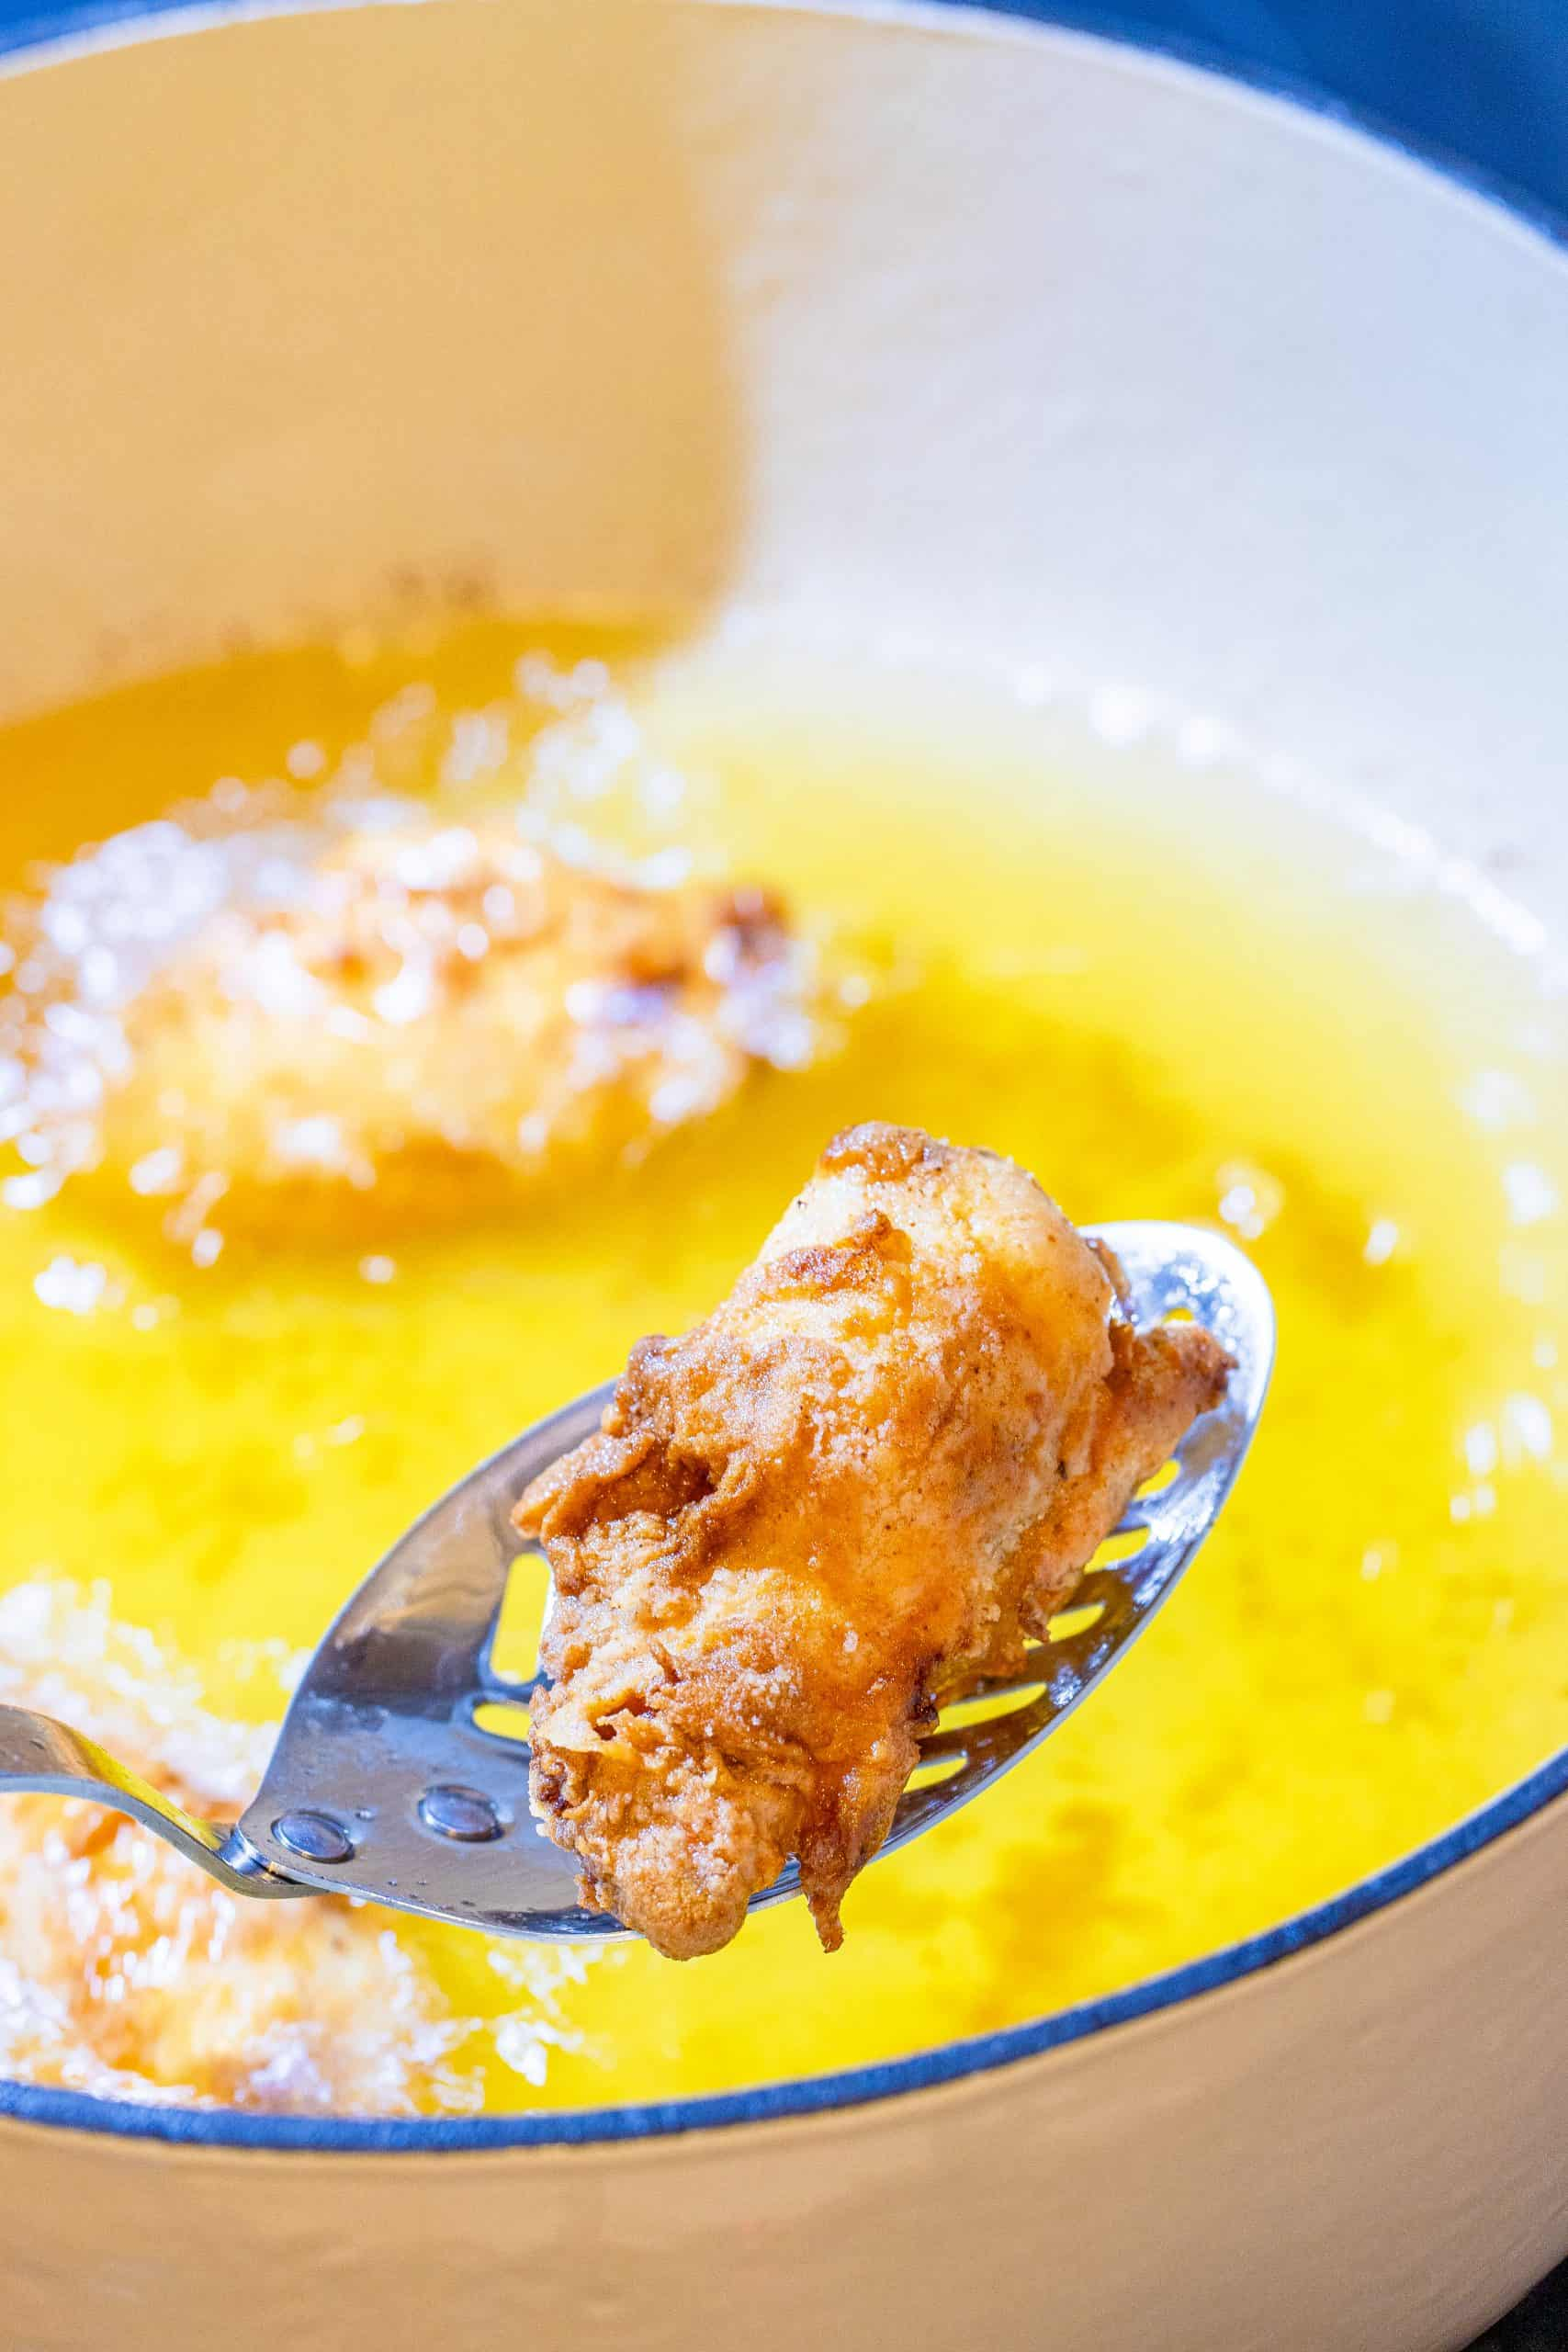 fried chicken wing in a spatula held over a dutch oven with oil.